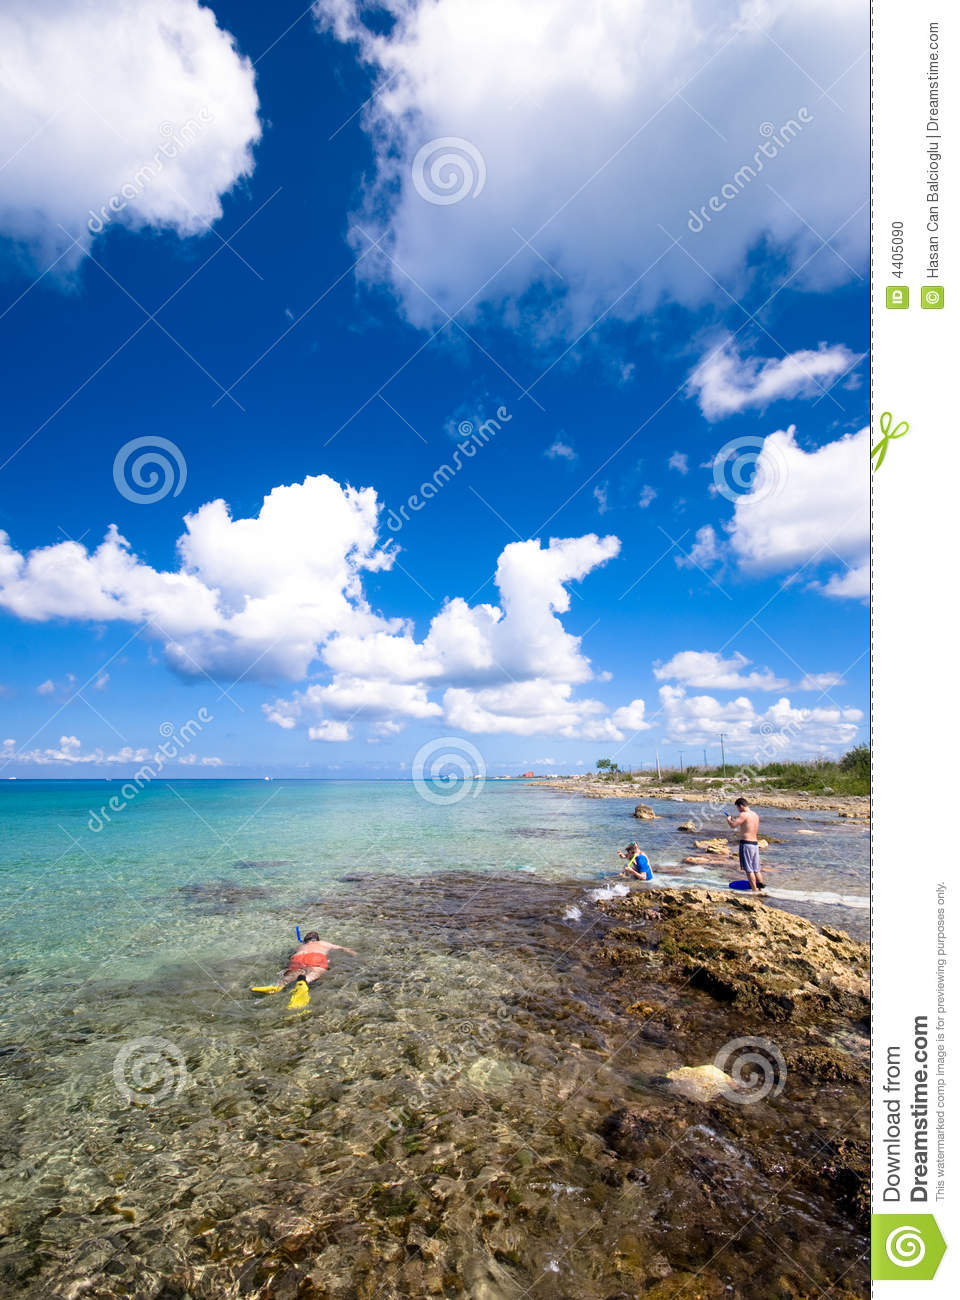 People snorkeling at the beach at Cozumel, Mexico